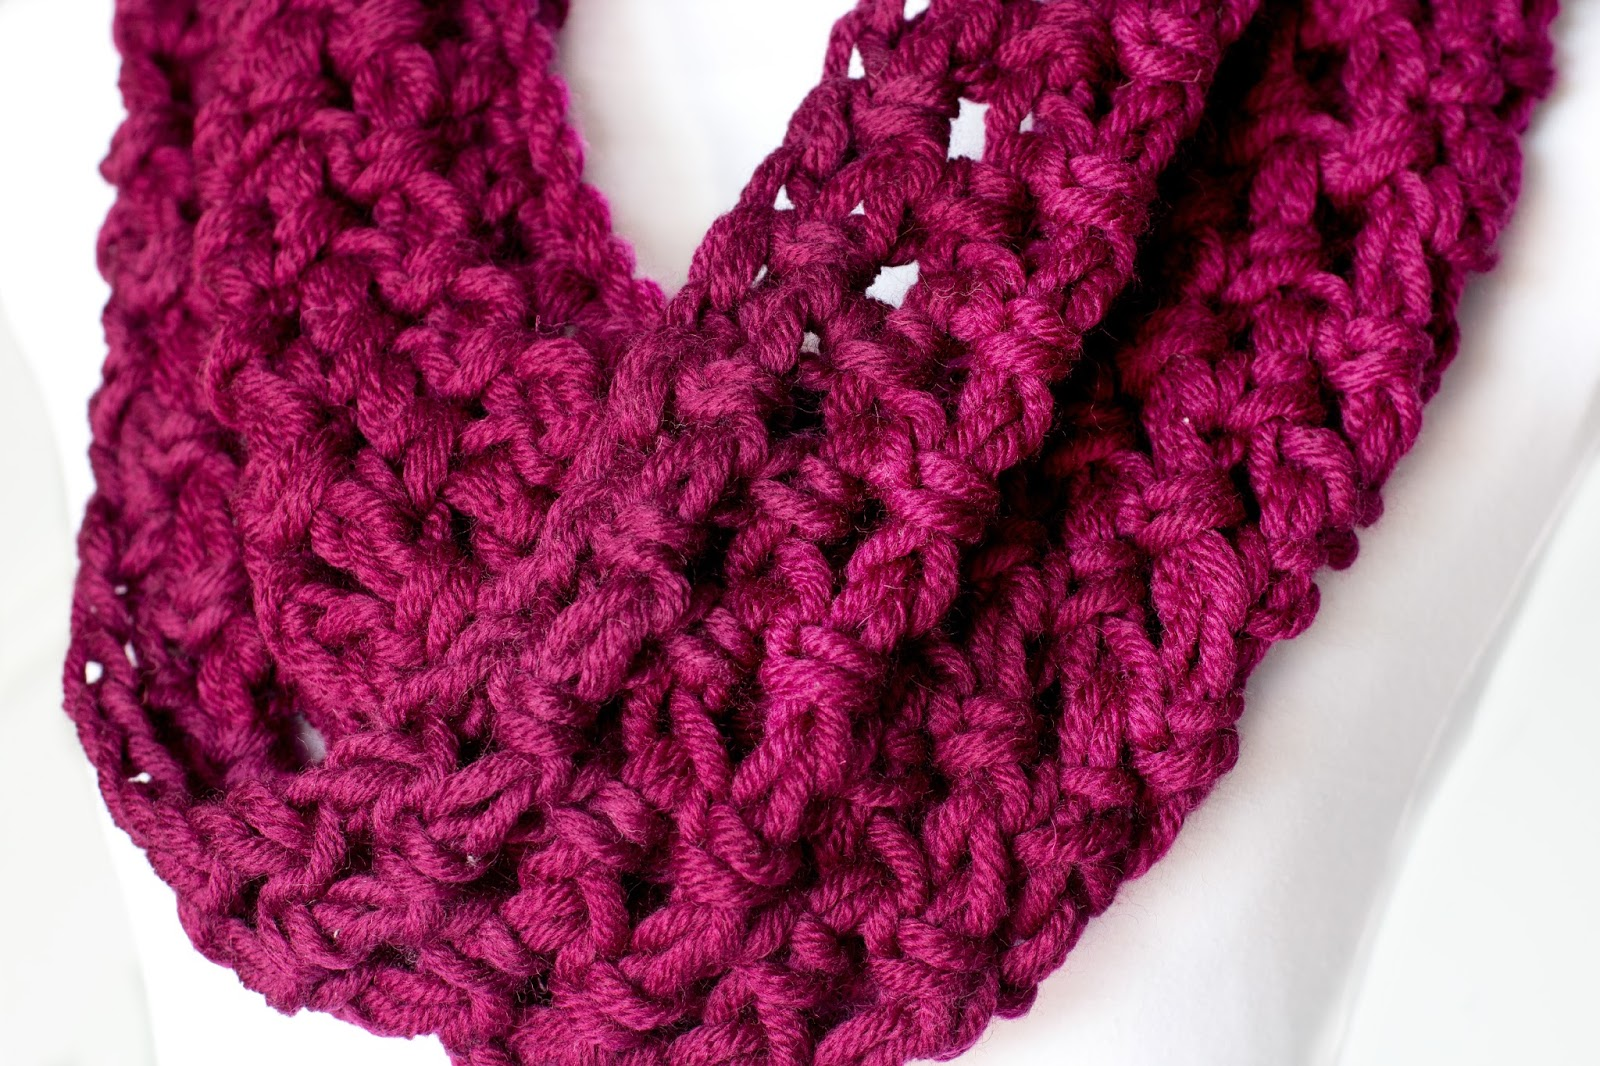 Crochet Stitches For Chunky Yarn : ... Honey Craft, Crochet, Create: Basic Chunky Cowl Crochet Pattern